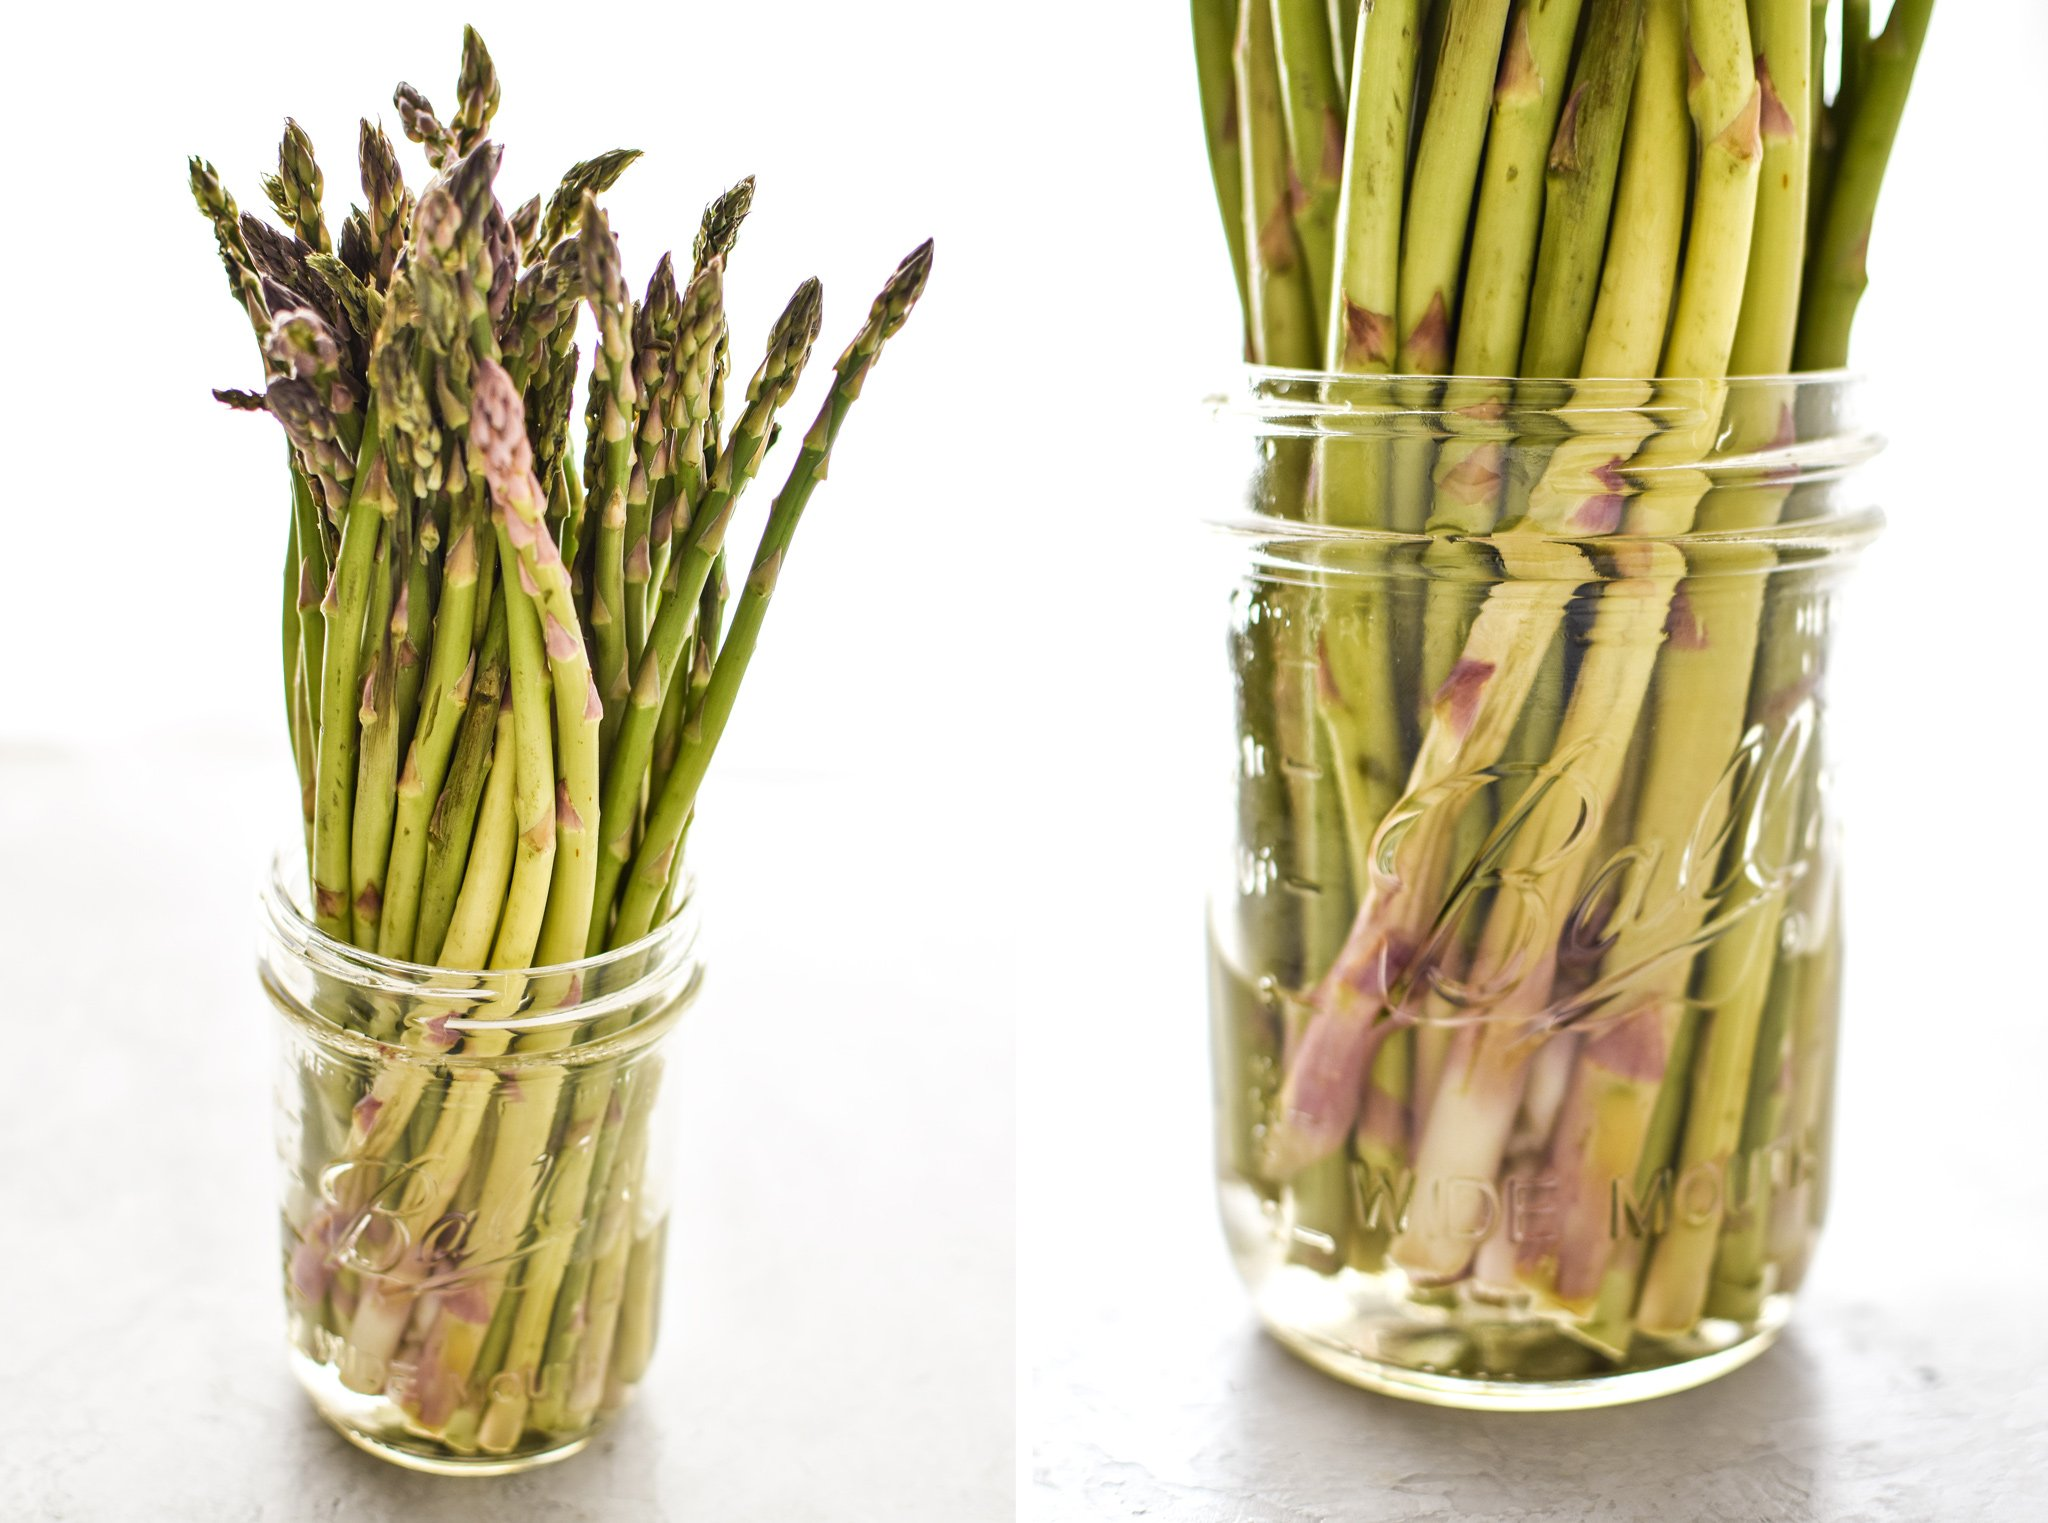 Asparagus spears in some water in a mason jar to keep them fresh.